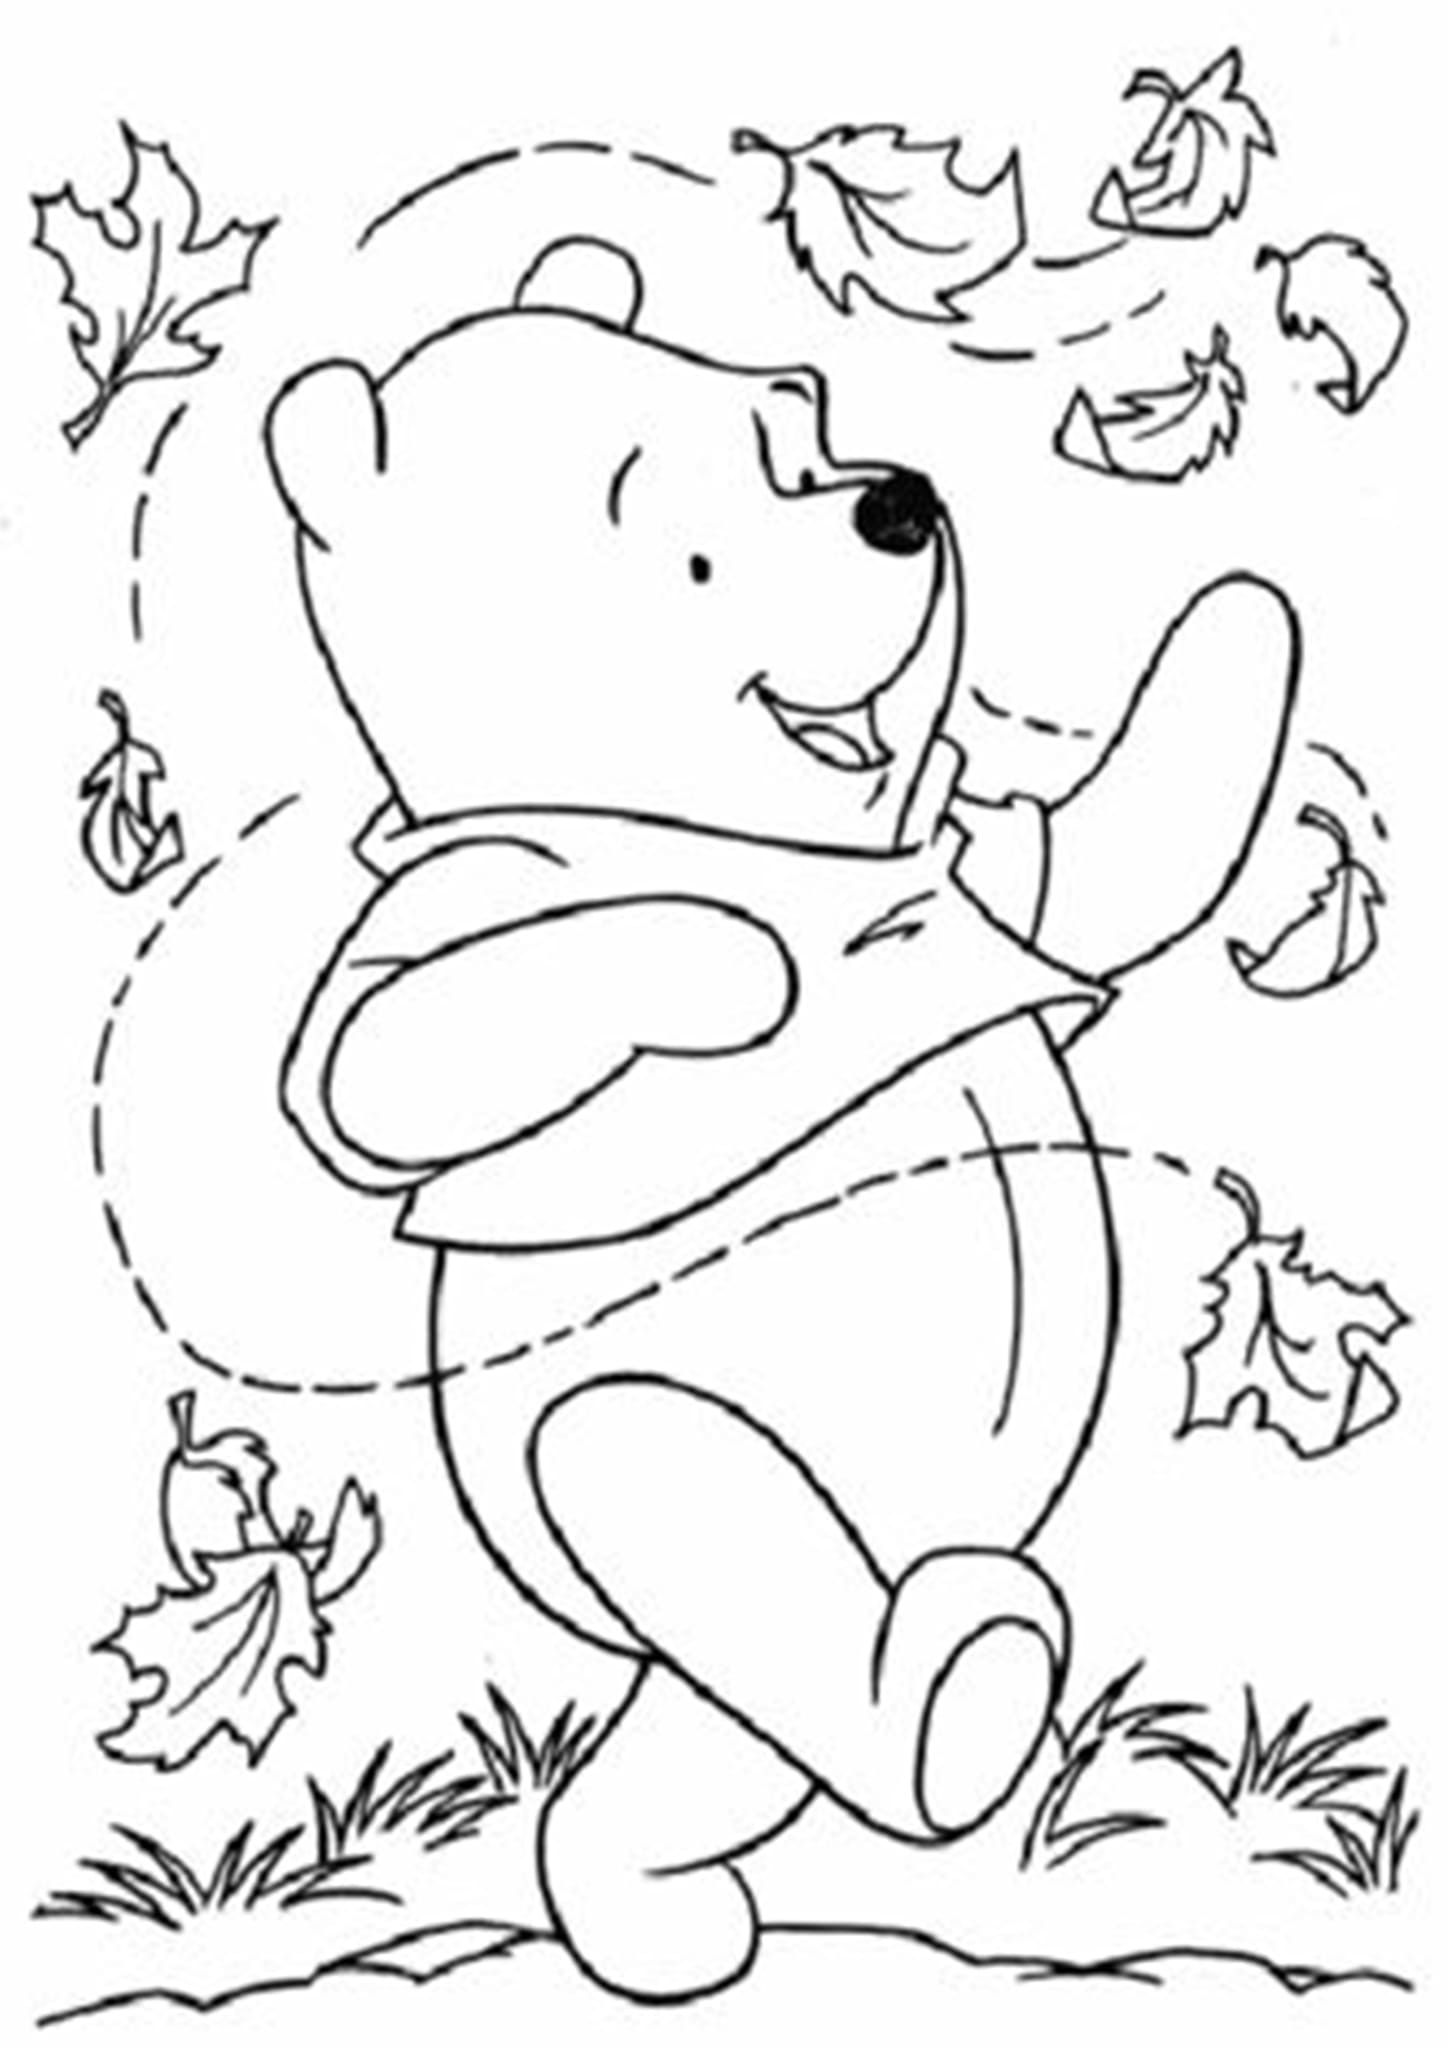 Free Easy To Print Winnie The Pooh Coloring Pages Fall Coloring Pages Disney Coloring Pages Fall Coloring Sheets [ 2048 x 1448 Pixel ]